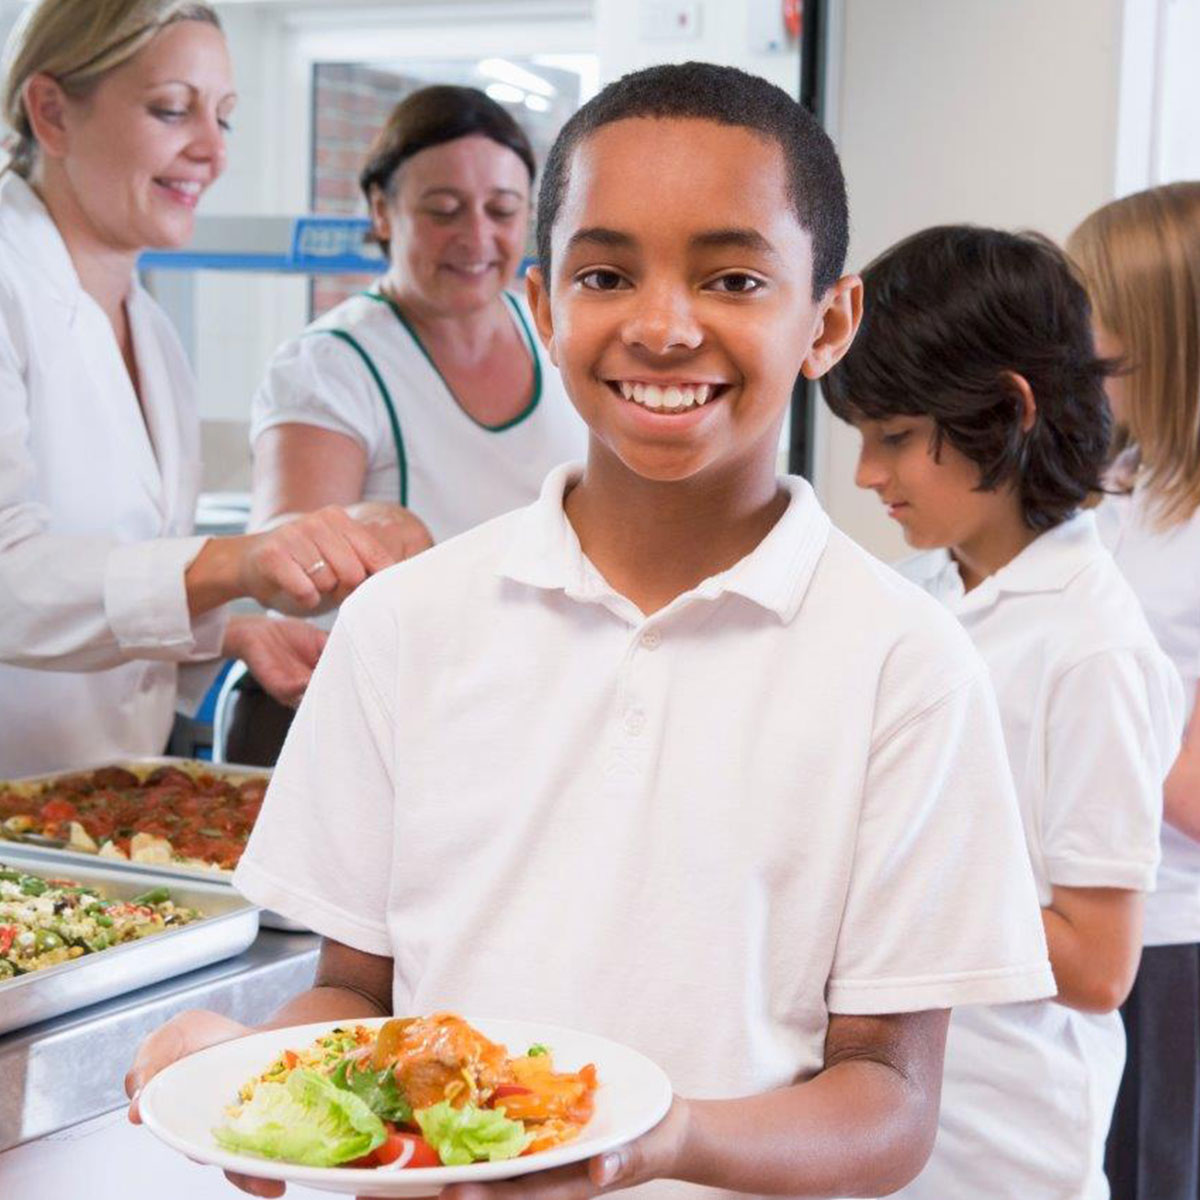 primary_school_meal_image